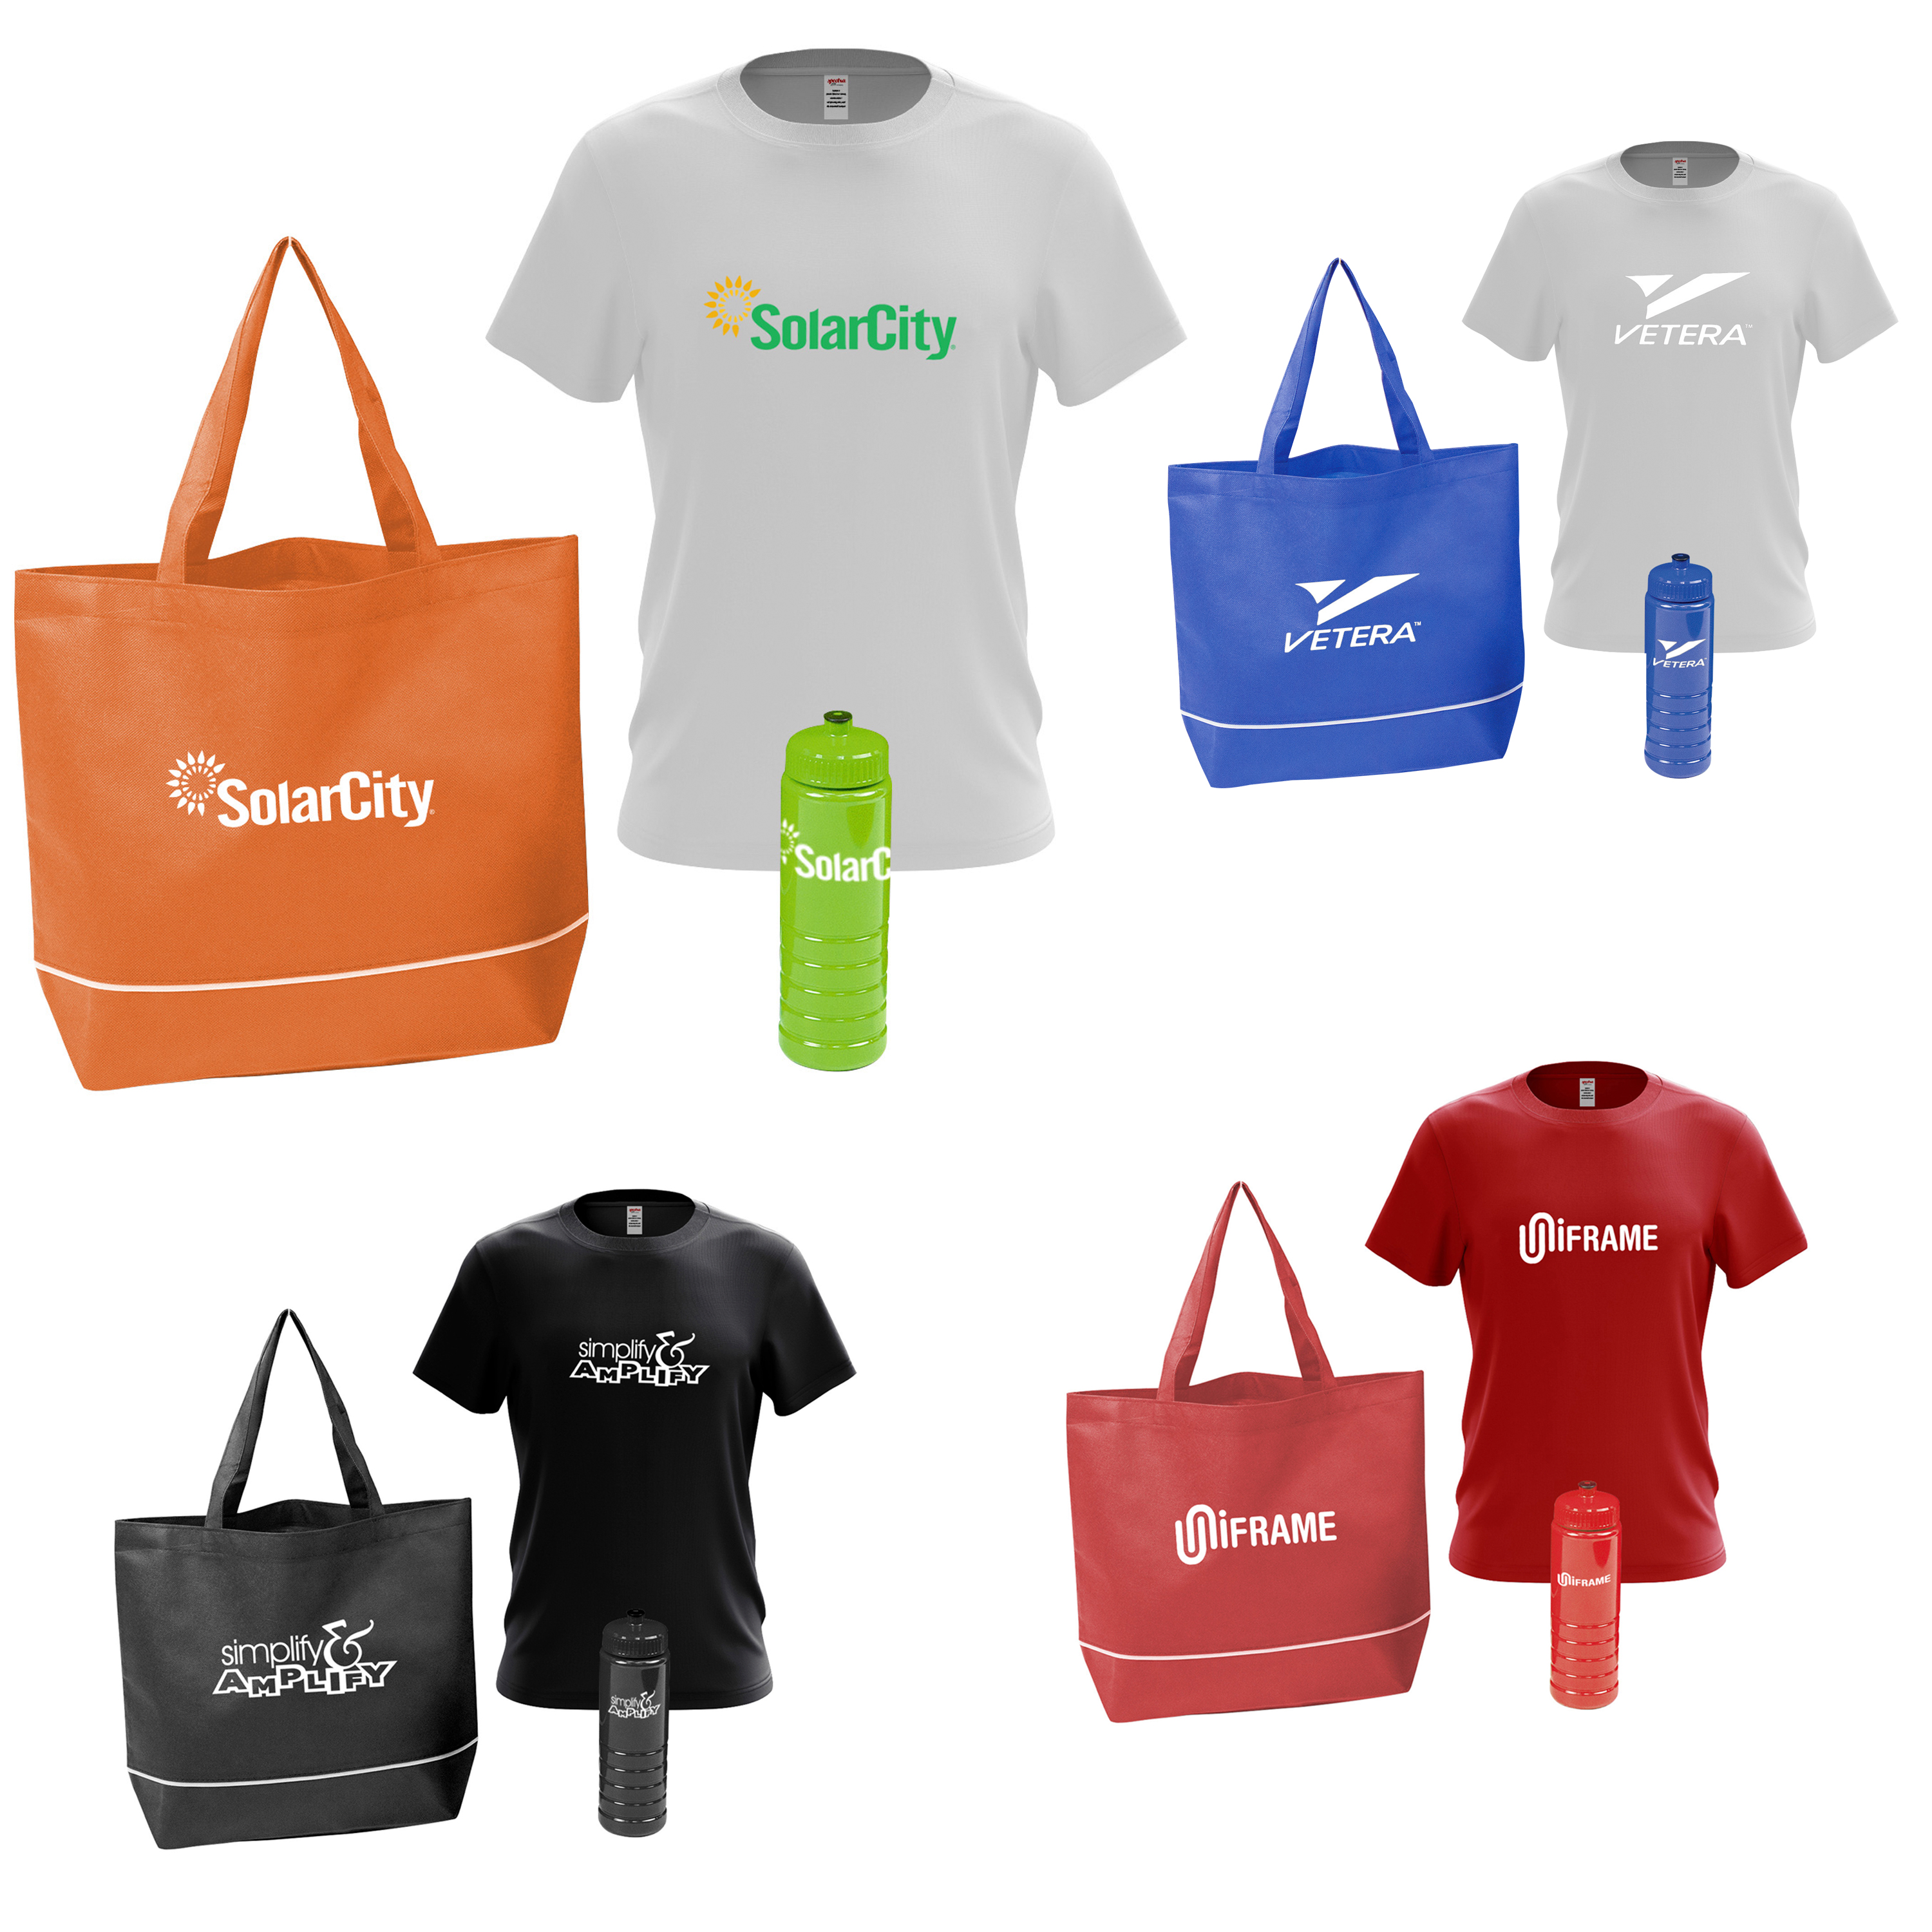 375926862-169 - The Student Event Gift Set - thumbnail